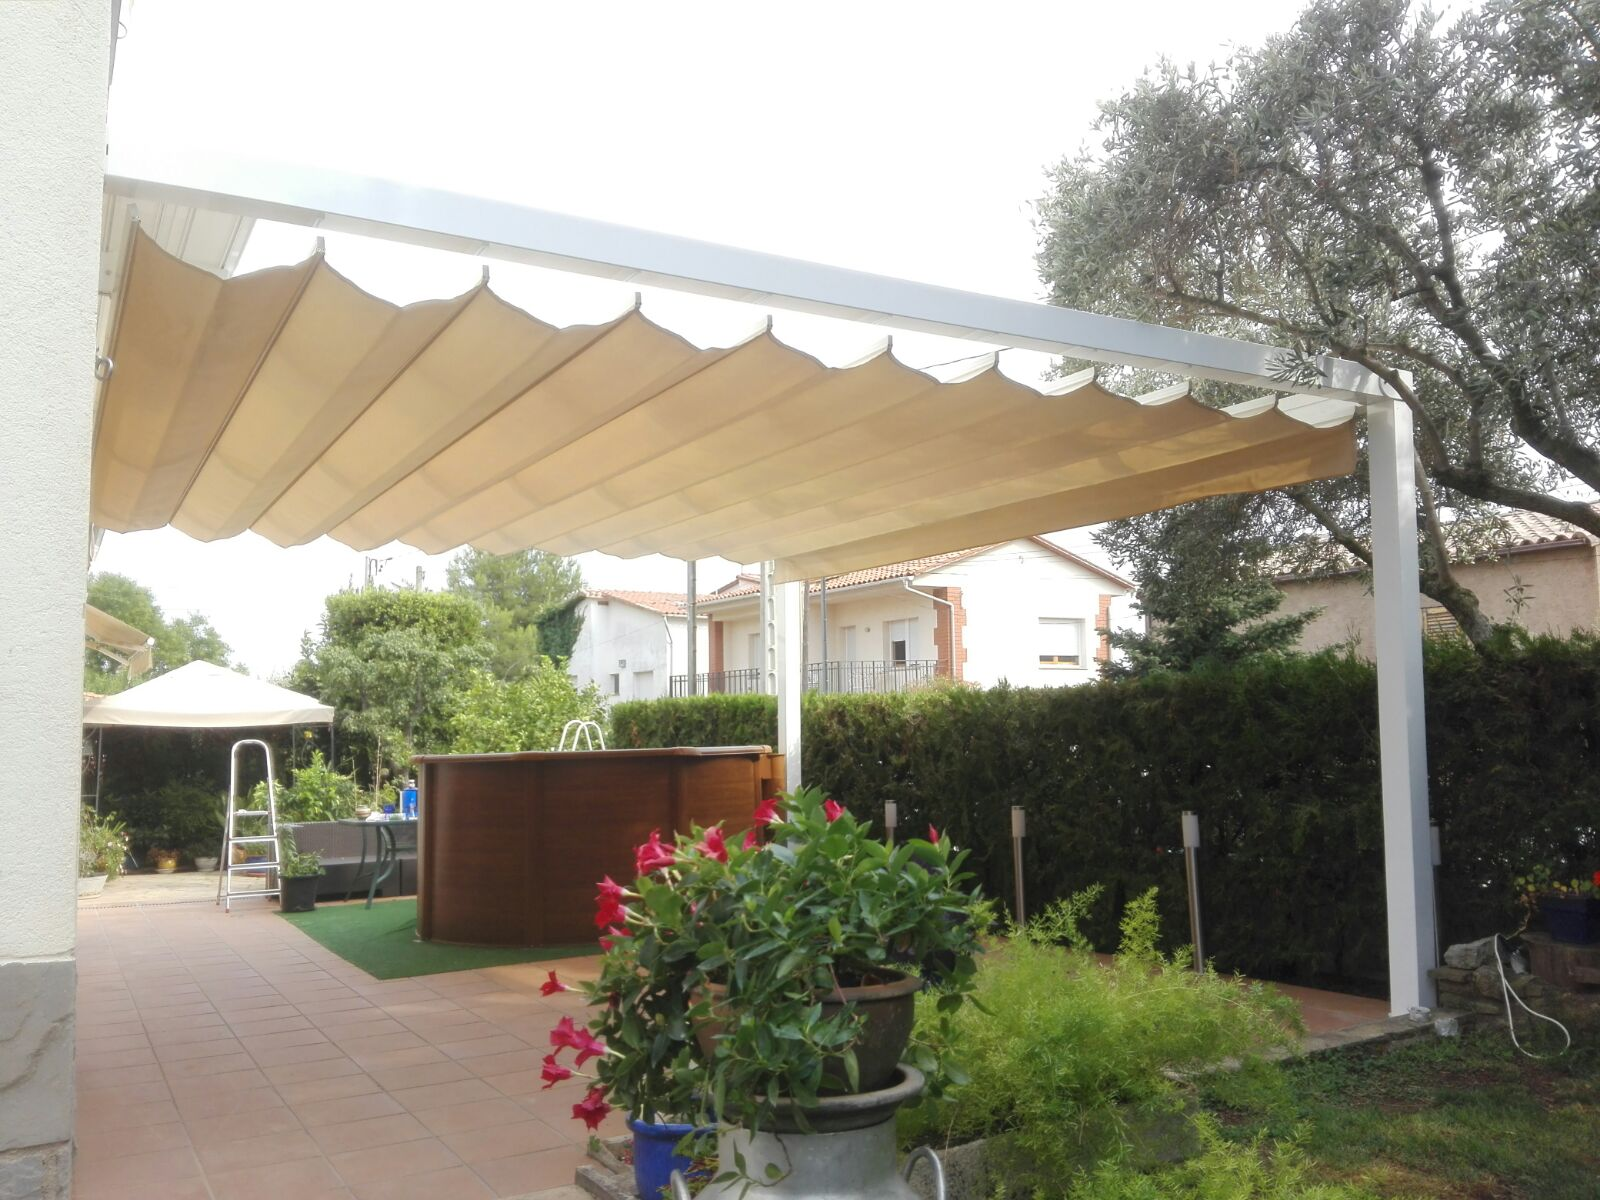 Toldo enrollable exterior cheap toldos with toldo for Mecanismo para toldos enrollables precio